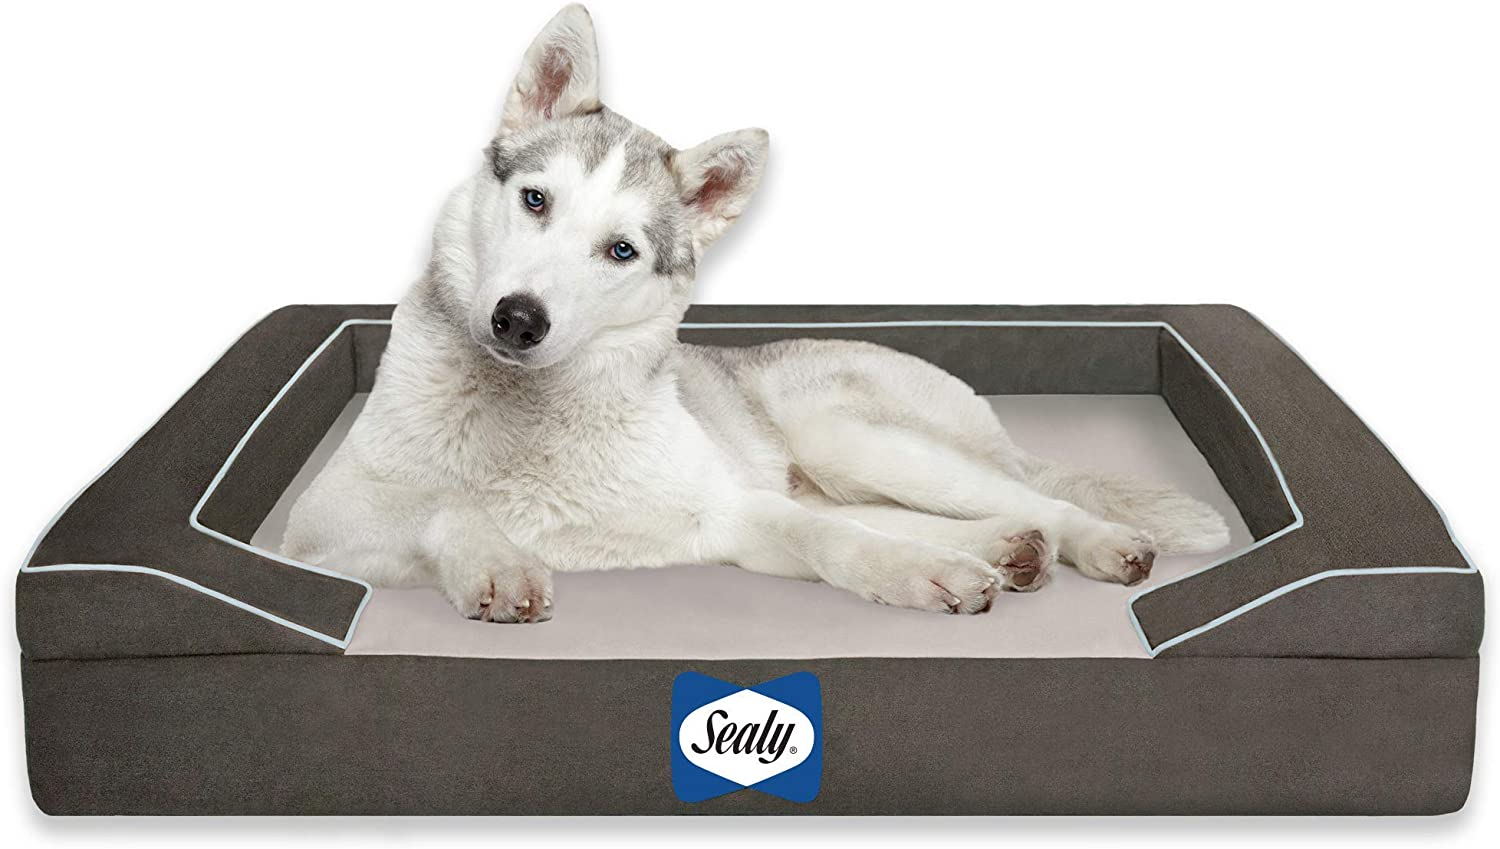 Best Cooling Beds for Dogs feat. SEALY Lux Quad Layer Orthopedic Dog Bed with Cooling Gel, image via Sealy/Amazon